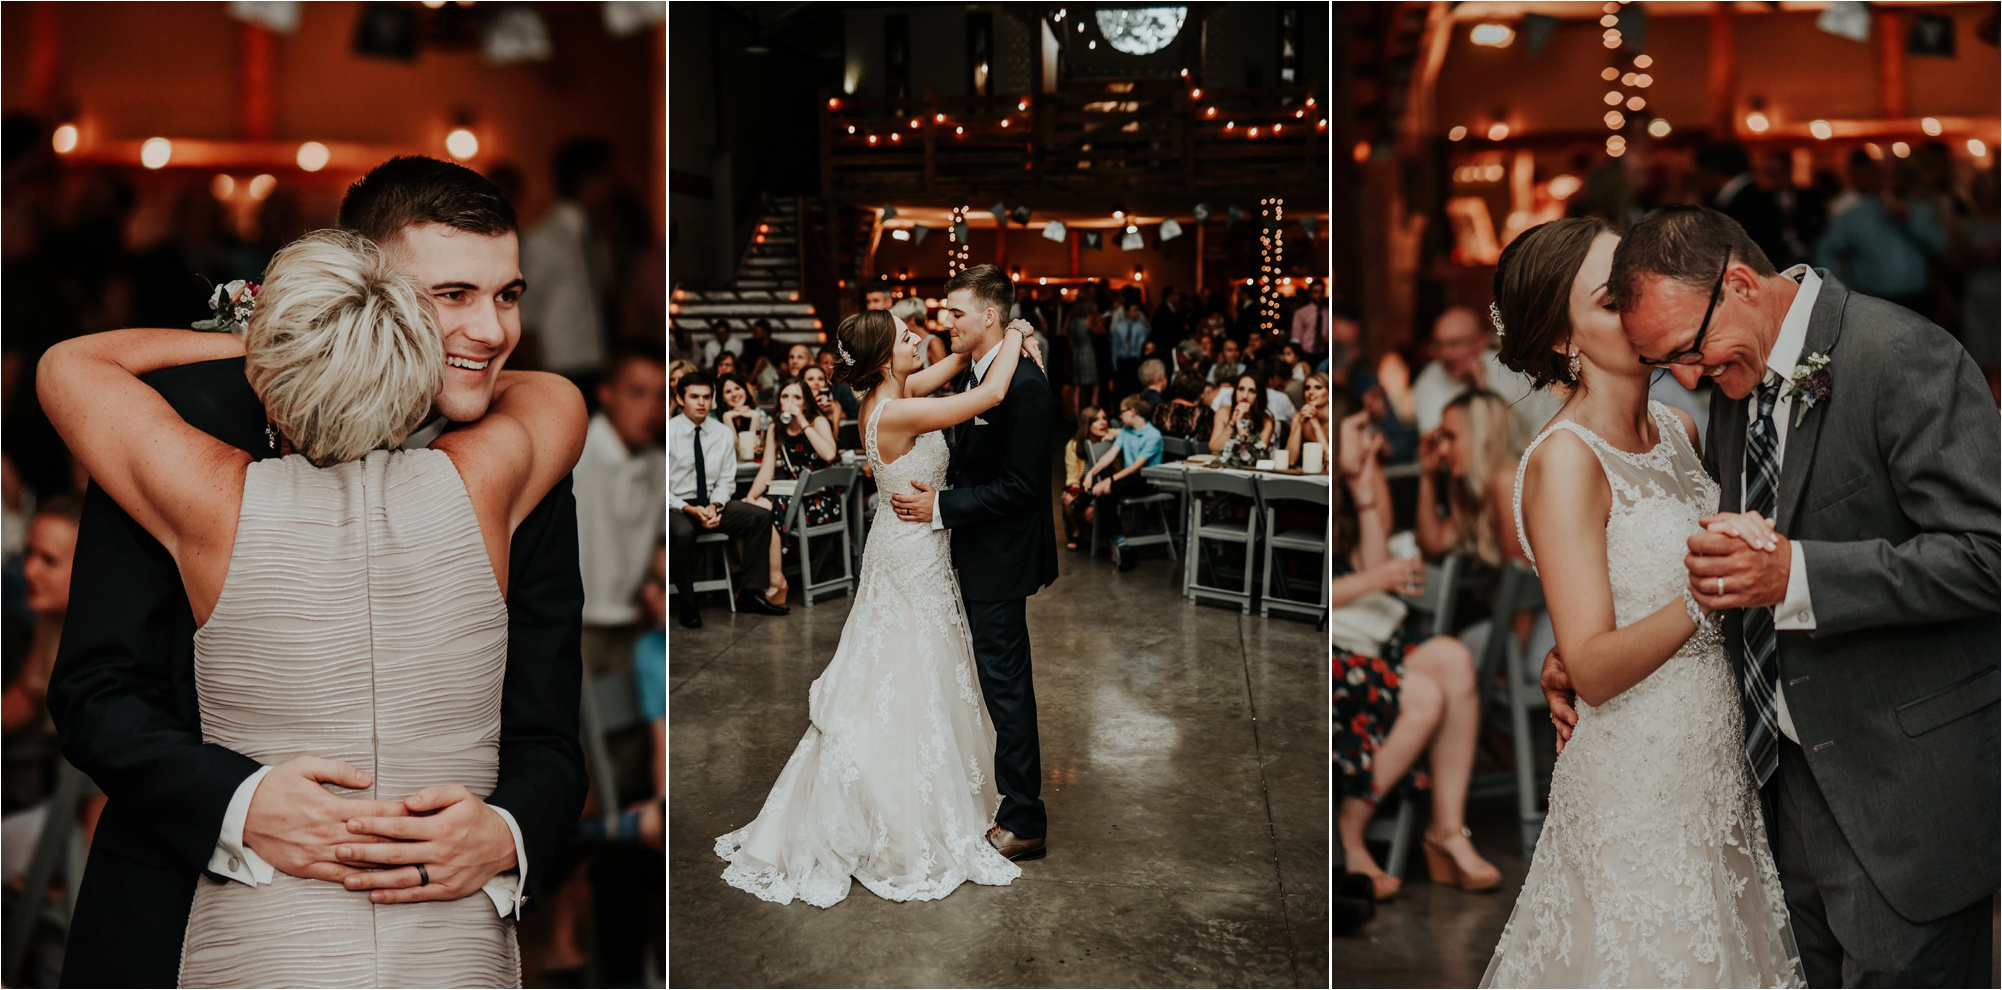 Barnes\' Place Des Moines, IA Wedding | Andy and Rebecca ...